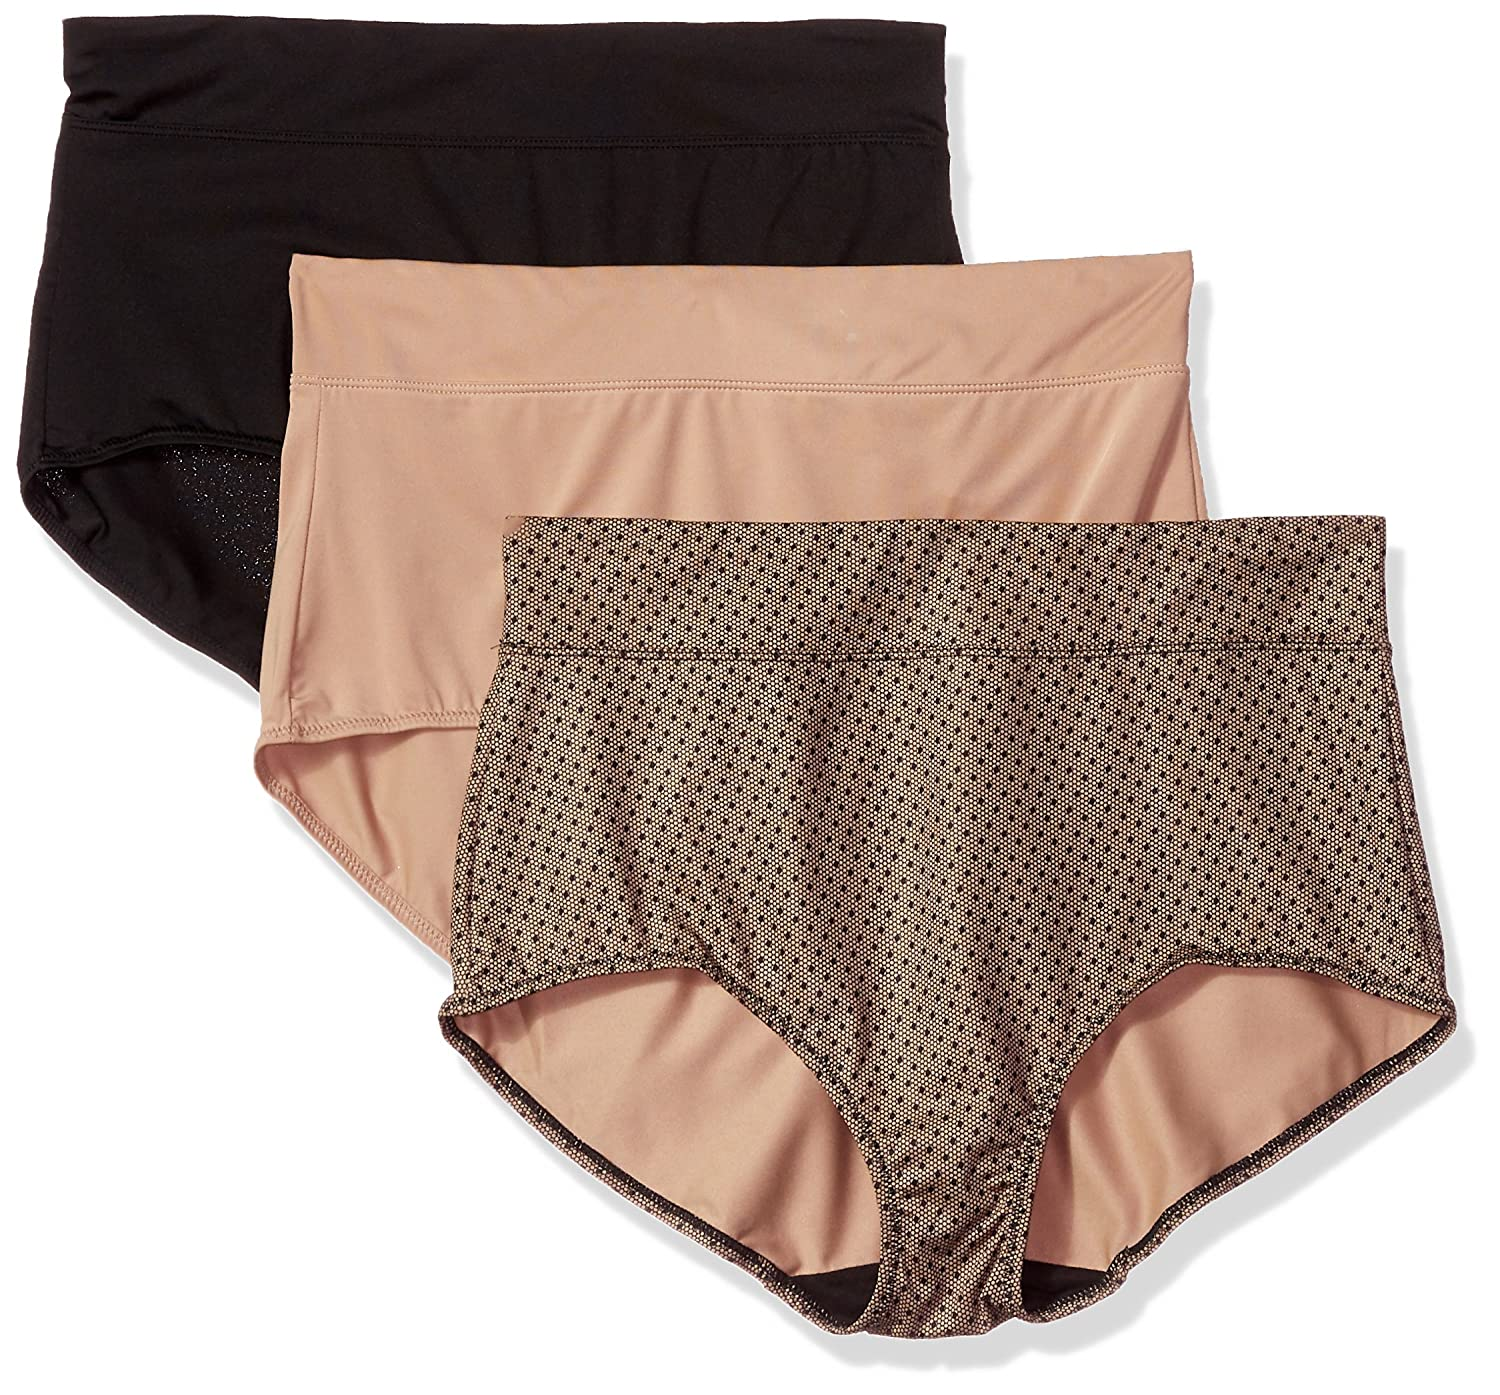 18d7e9a814d Warner's Women's Blissful Benefits No Muffin Top 3 Pack Brief Panty at  Amazon Women's Clothing store: